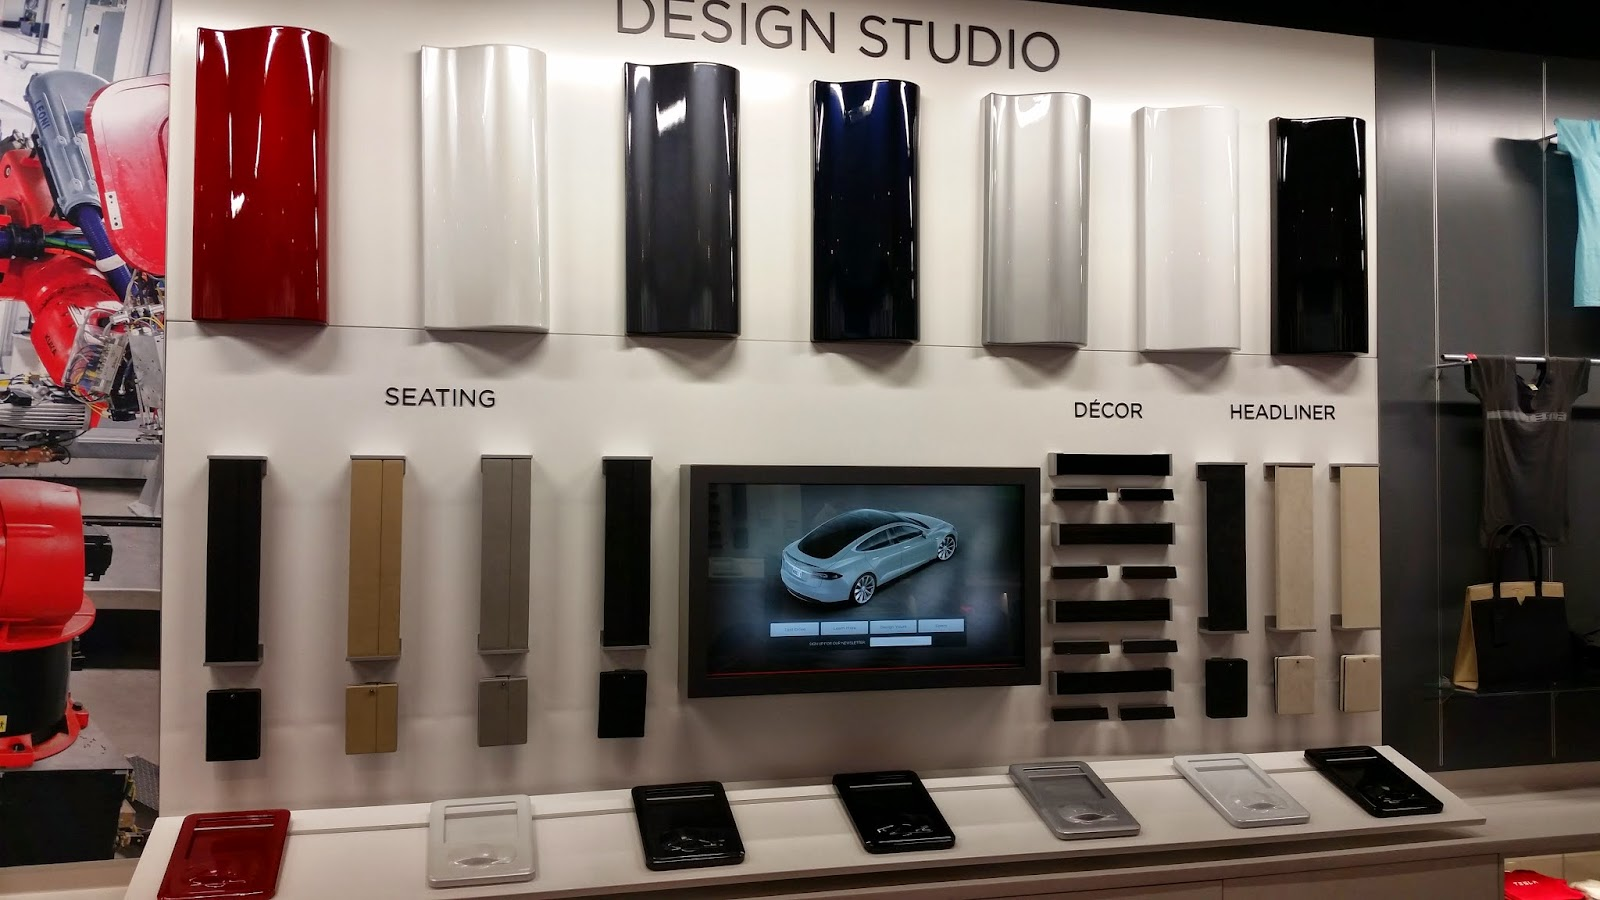 Tesla design studio at Natick Mall